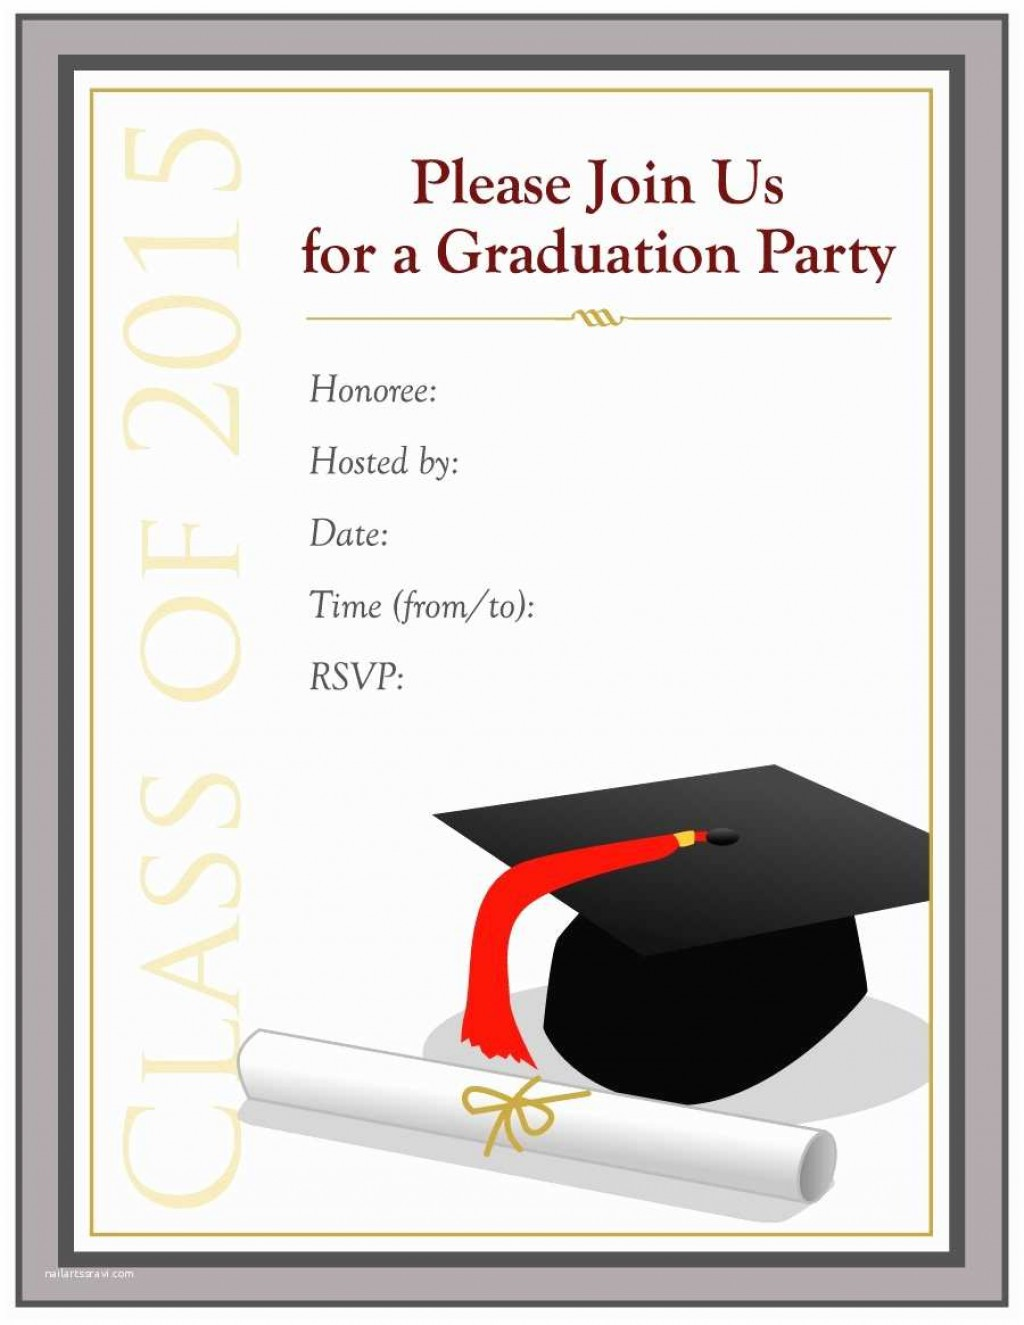 006 Awful College Graduation Invitation Template Sample  Templates Free PartyLarge